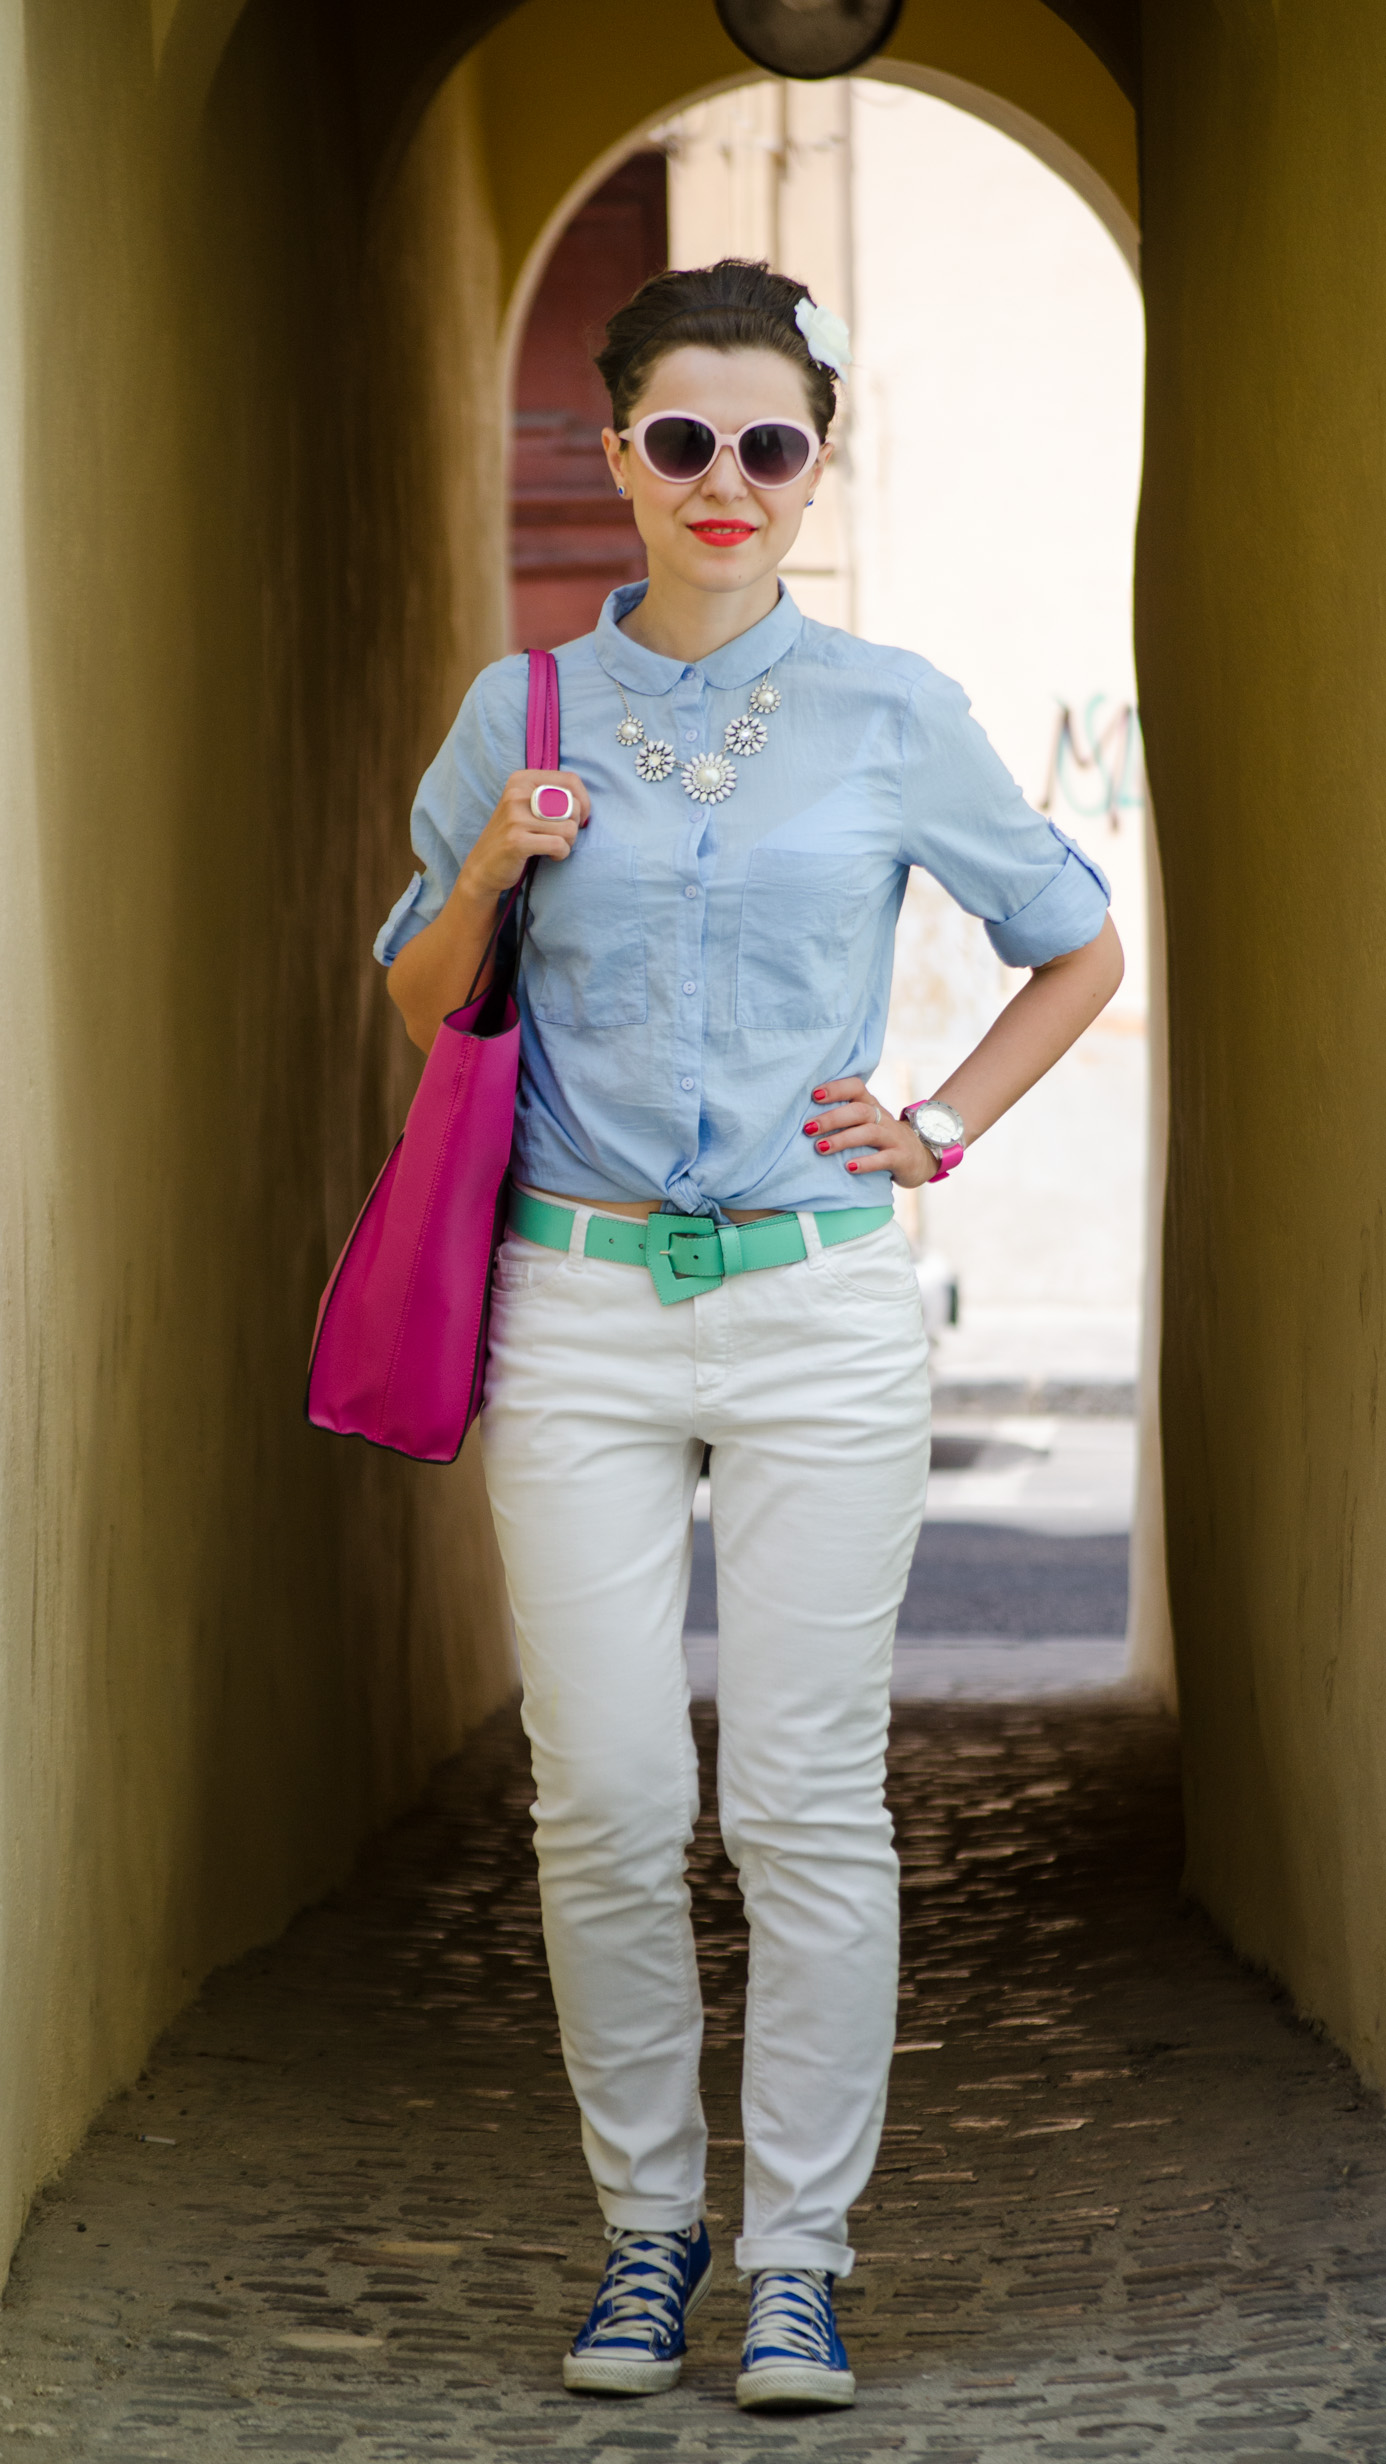 white jeans loose boyfriend shirt fuchsia bag zara C&A converse cobalt blue sneakers holiday outfit mountains